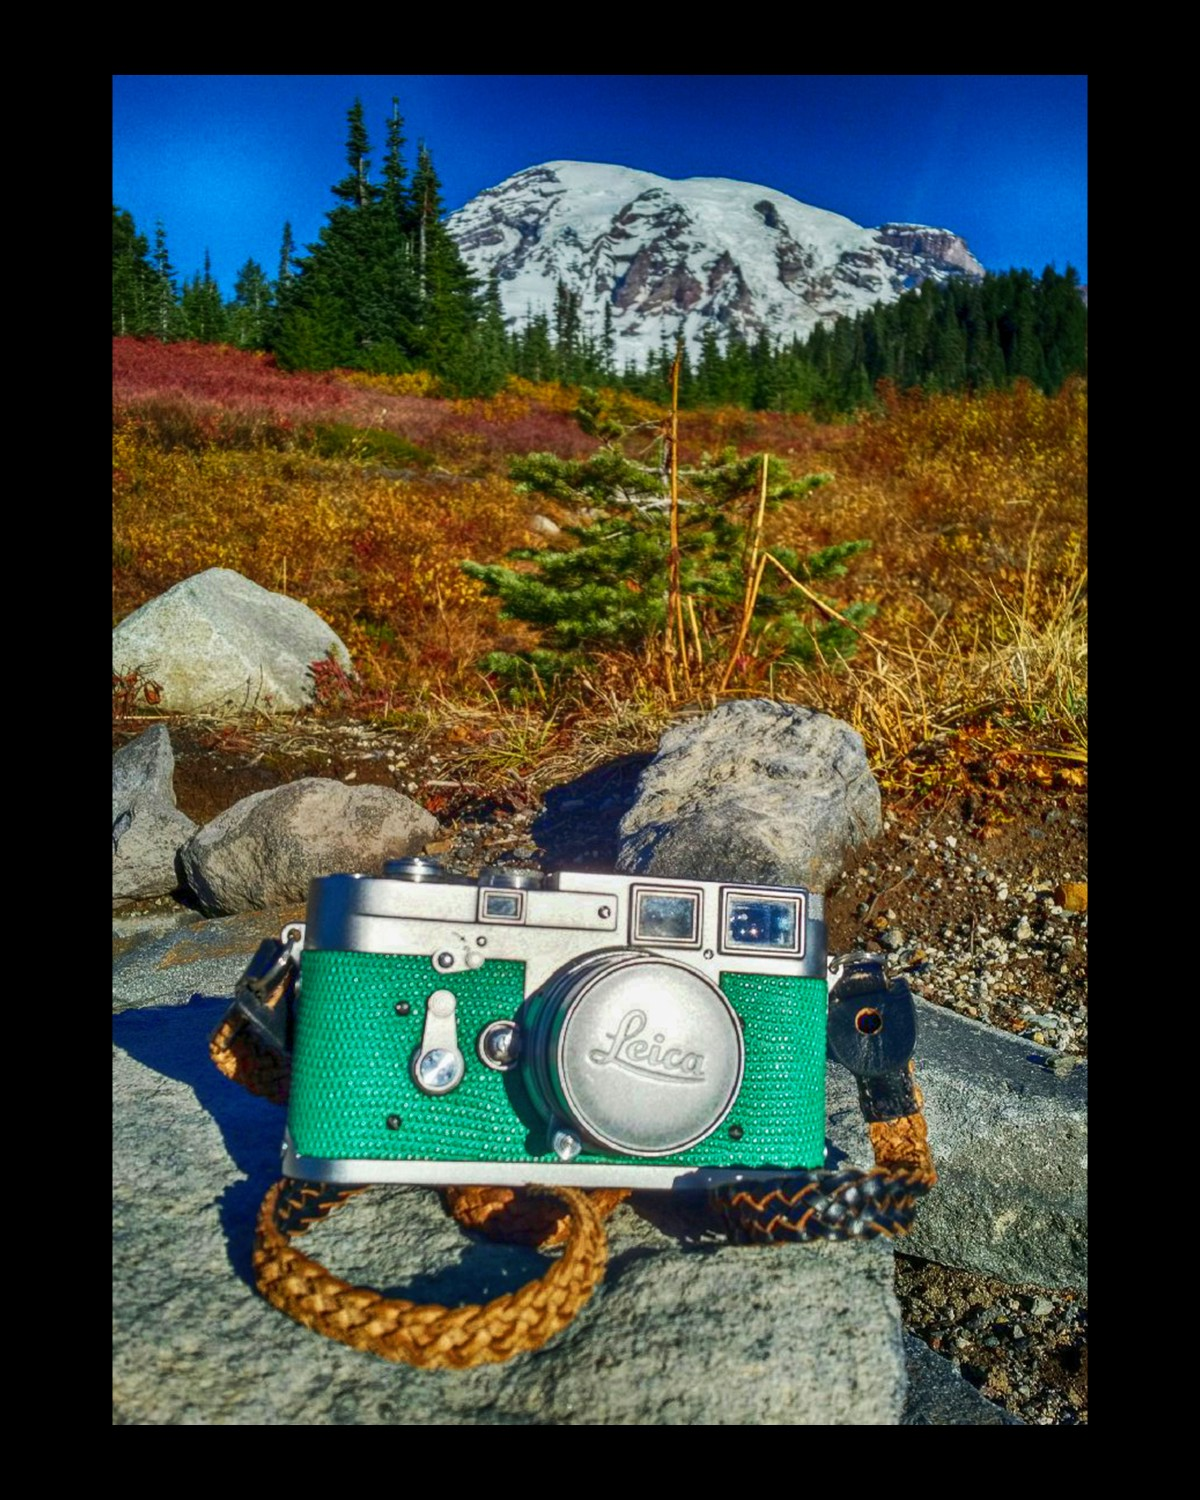 So how did my Washington State film cameras do?